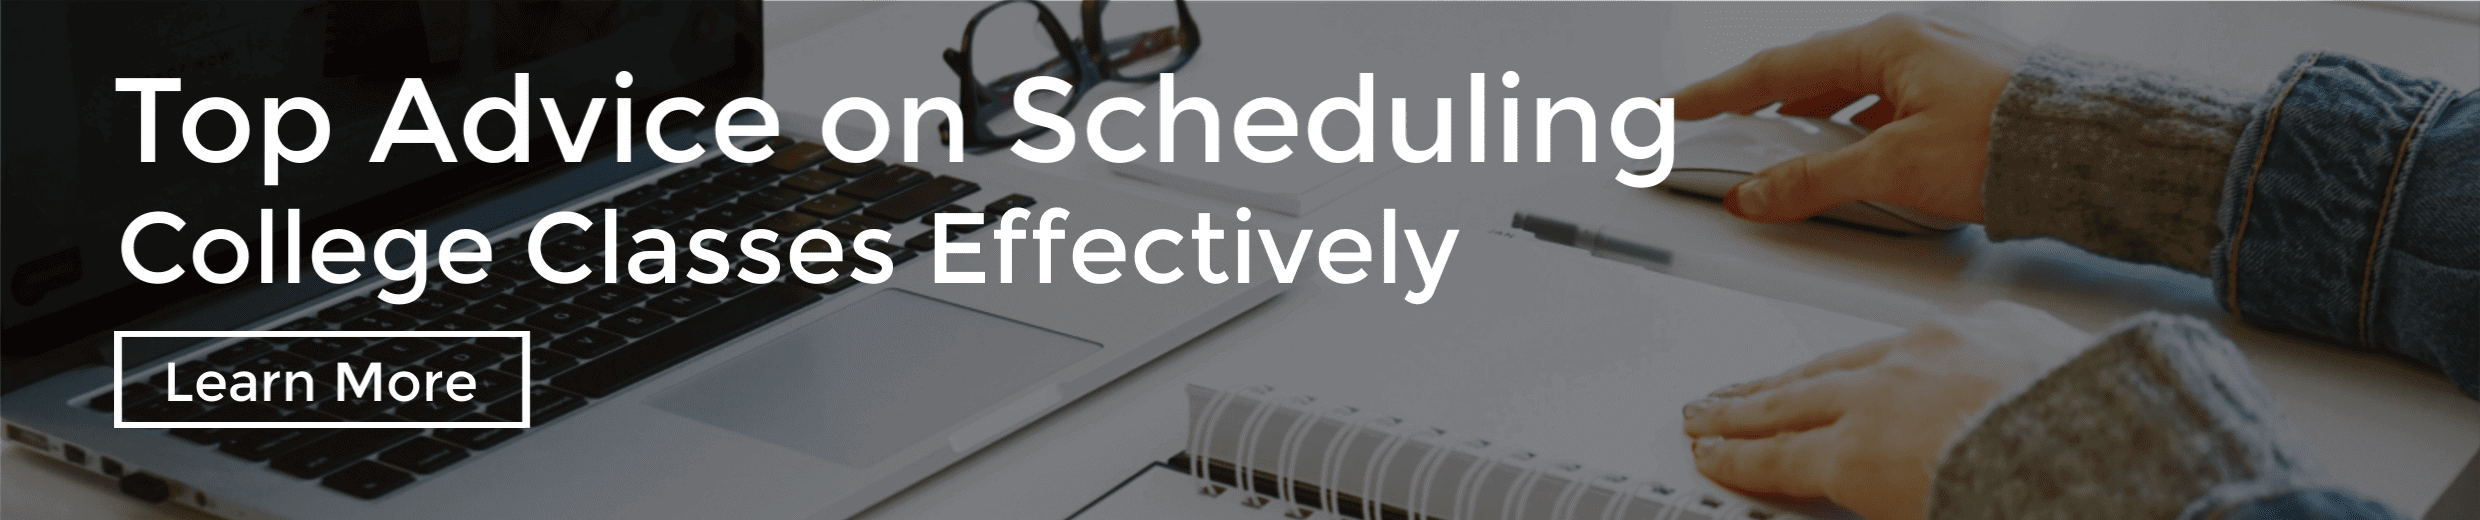 Top Advice on Scheduling College Classes Effectively